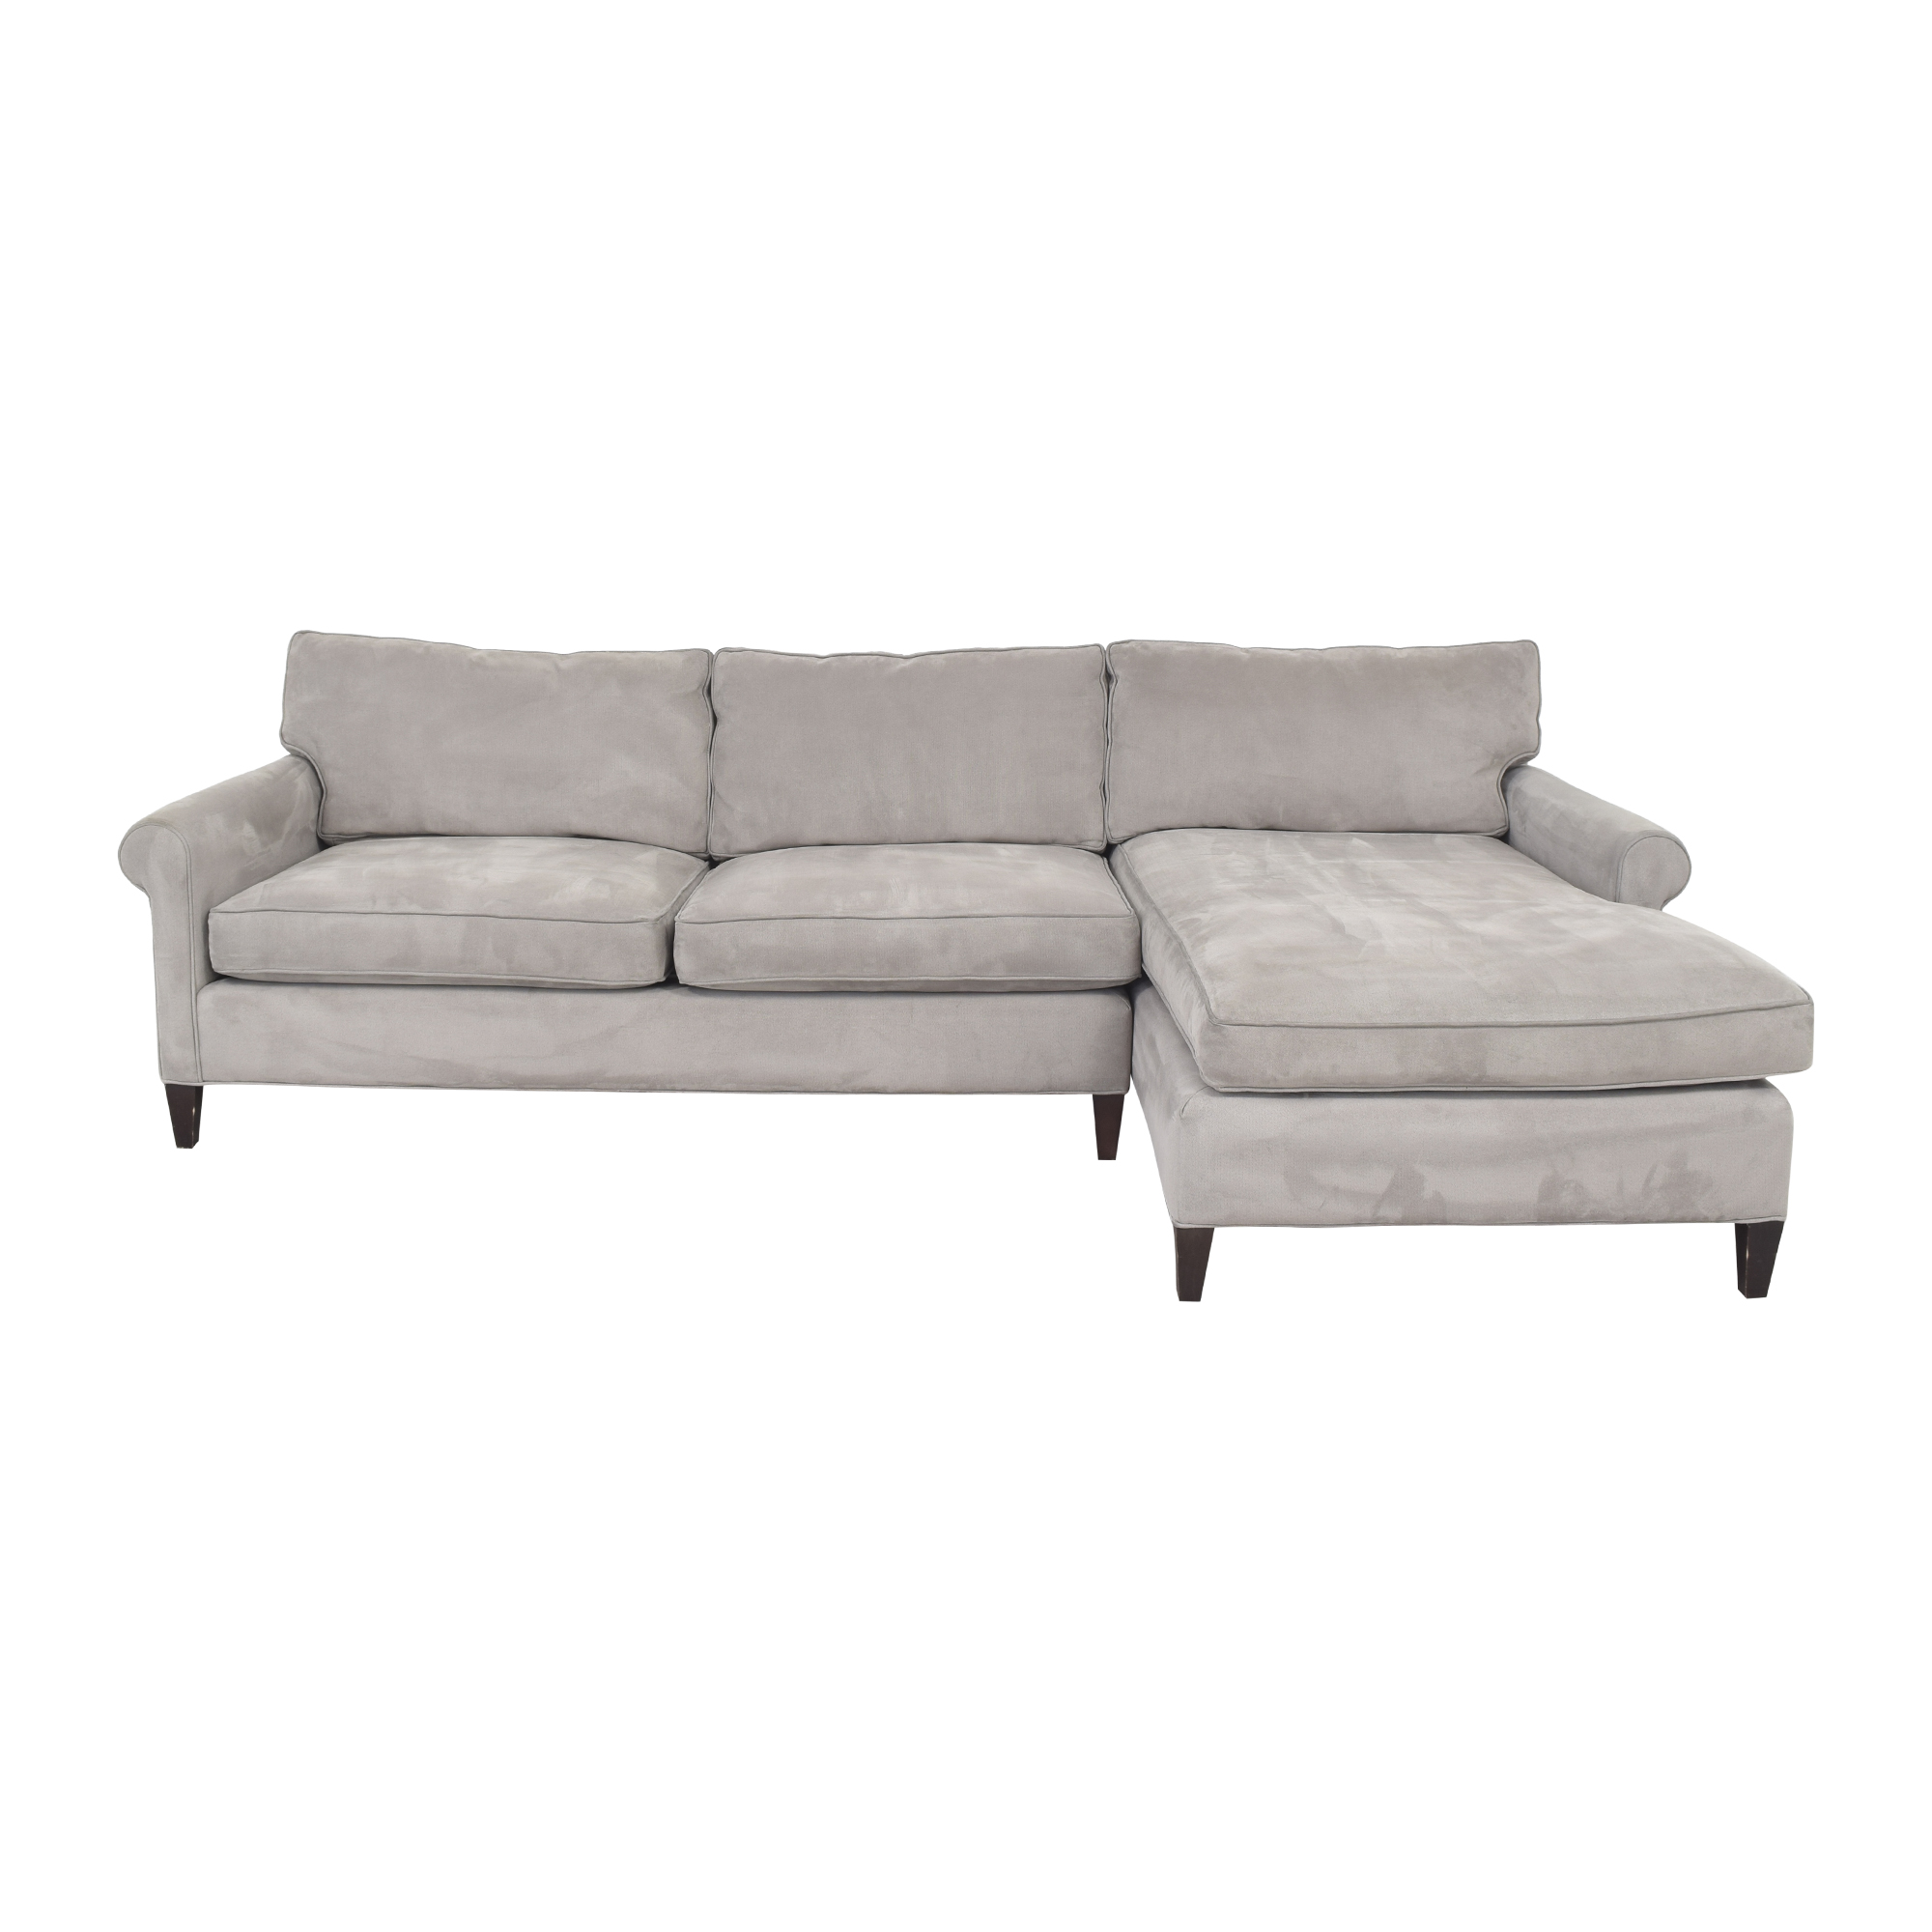 Crate & Barrel Crate & Barrel Montclair Chaise Sectional Sofa dimensions